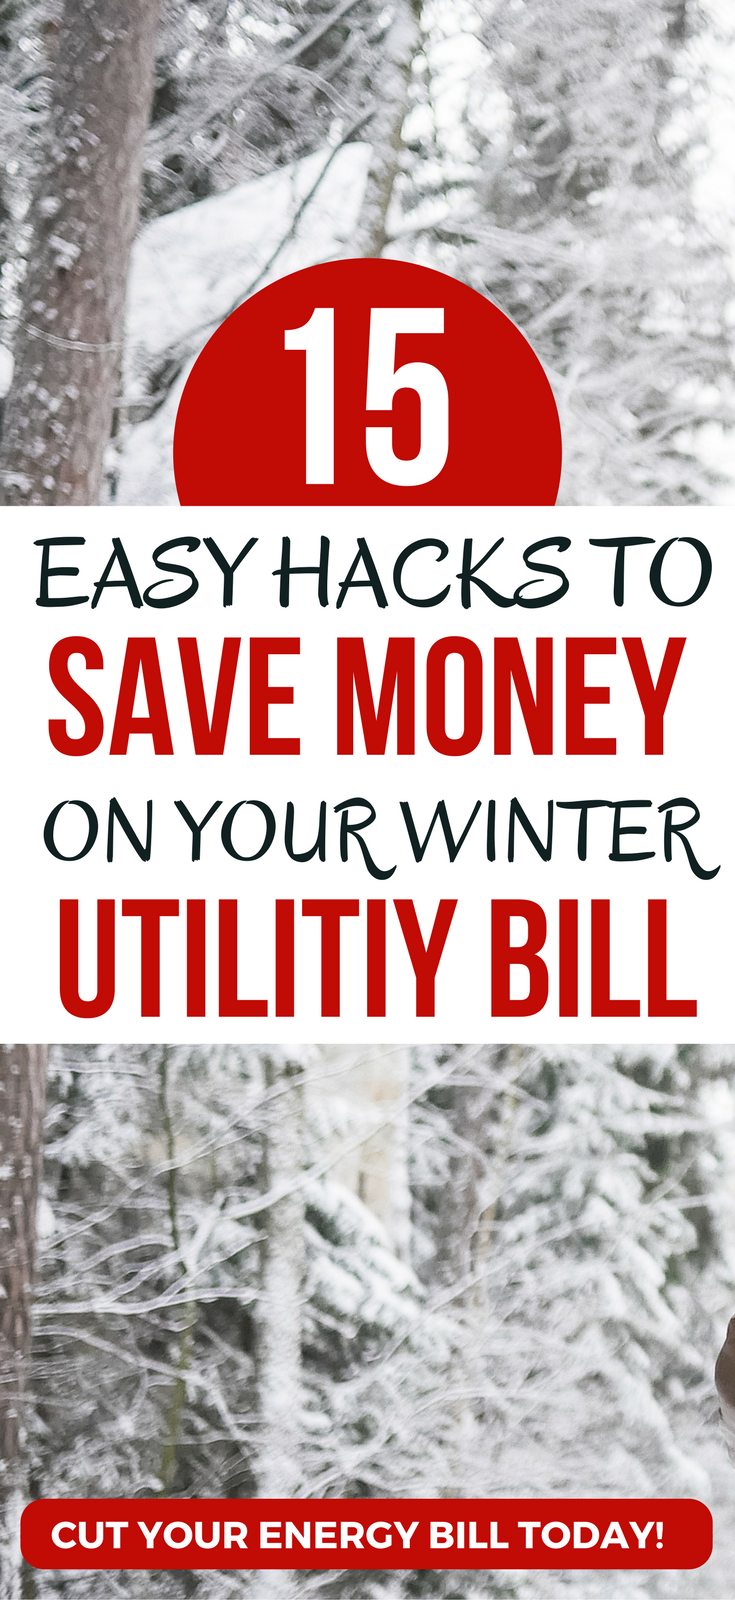 How To Save Money On Energy In Winter